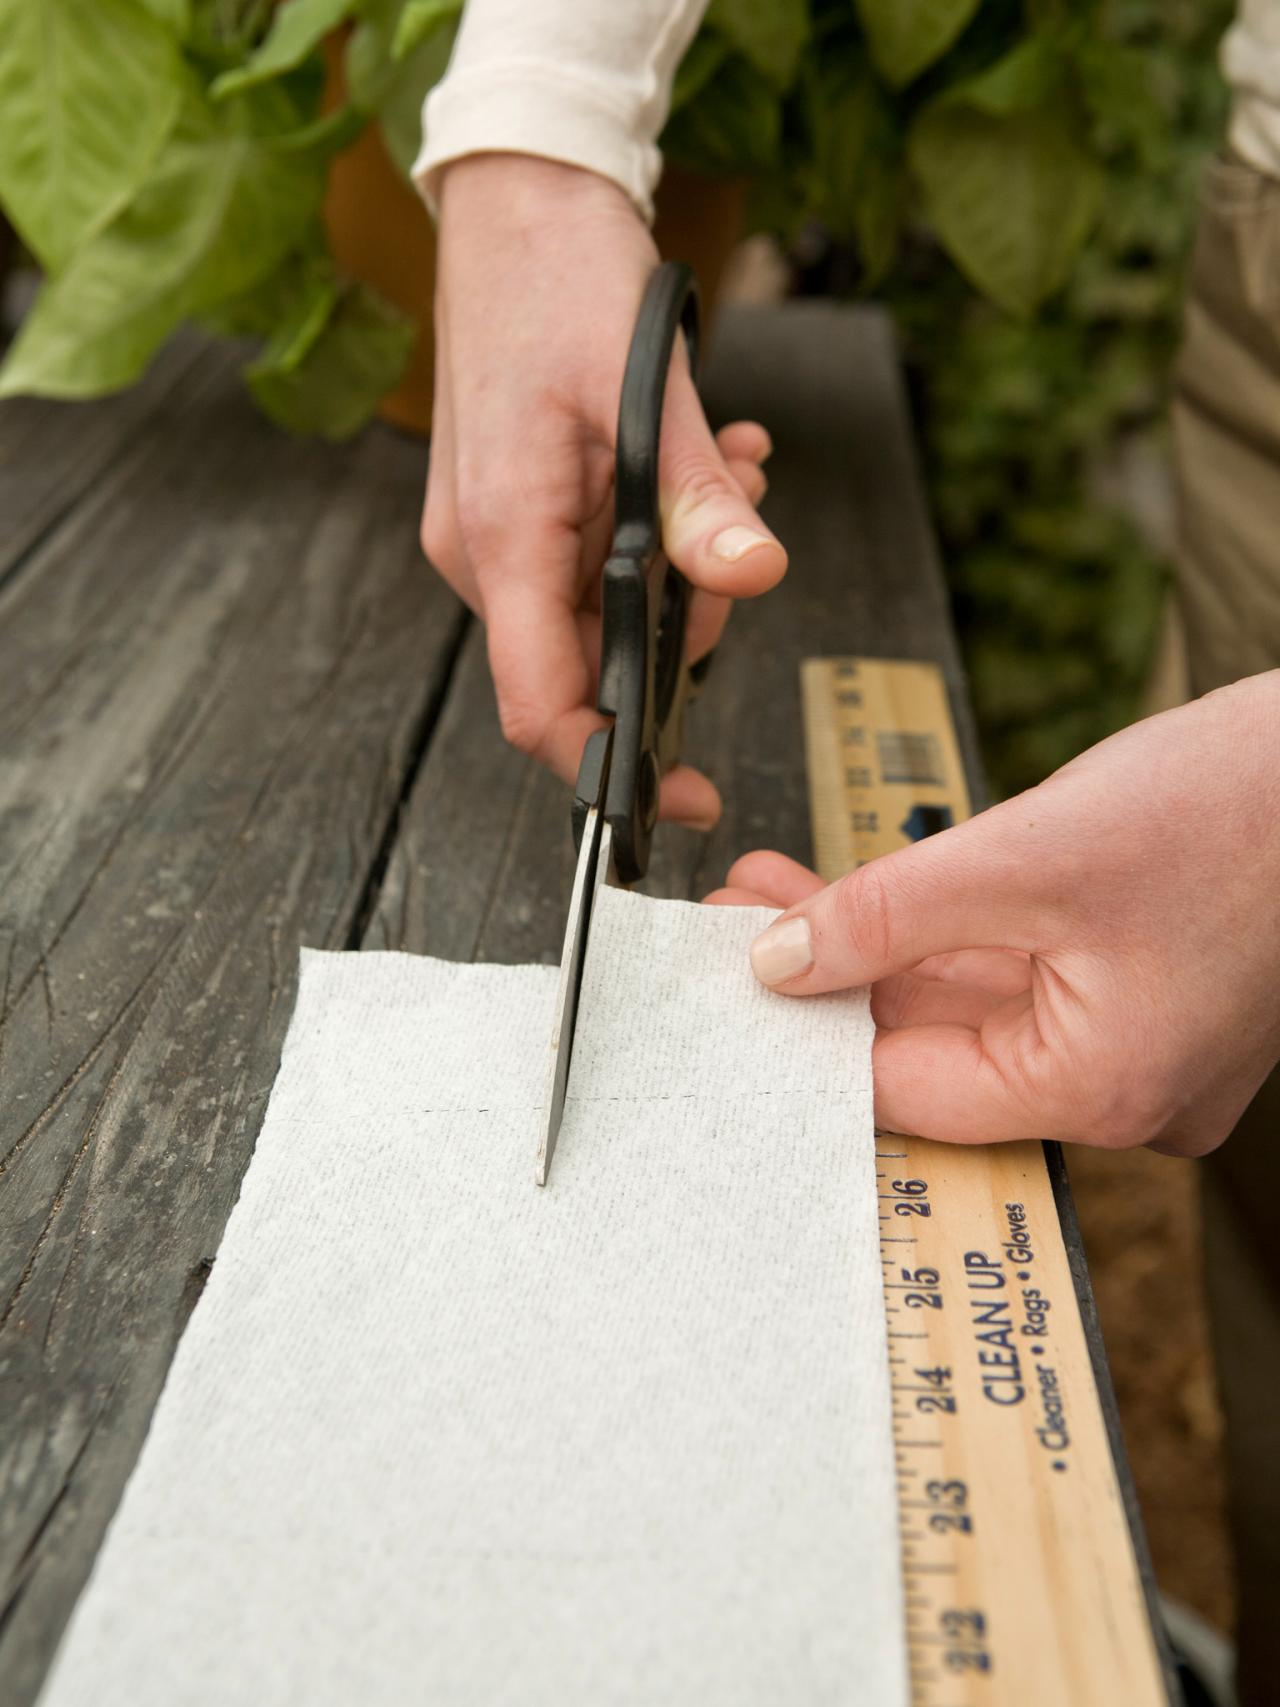 Making a seed strip for planting